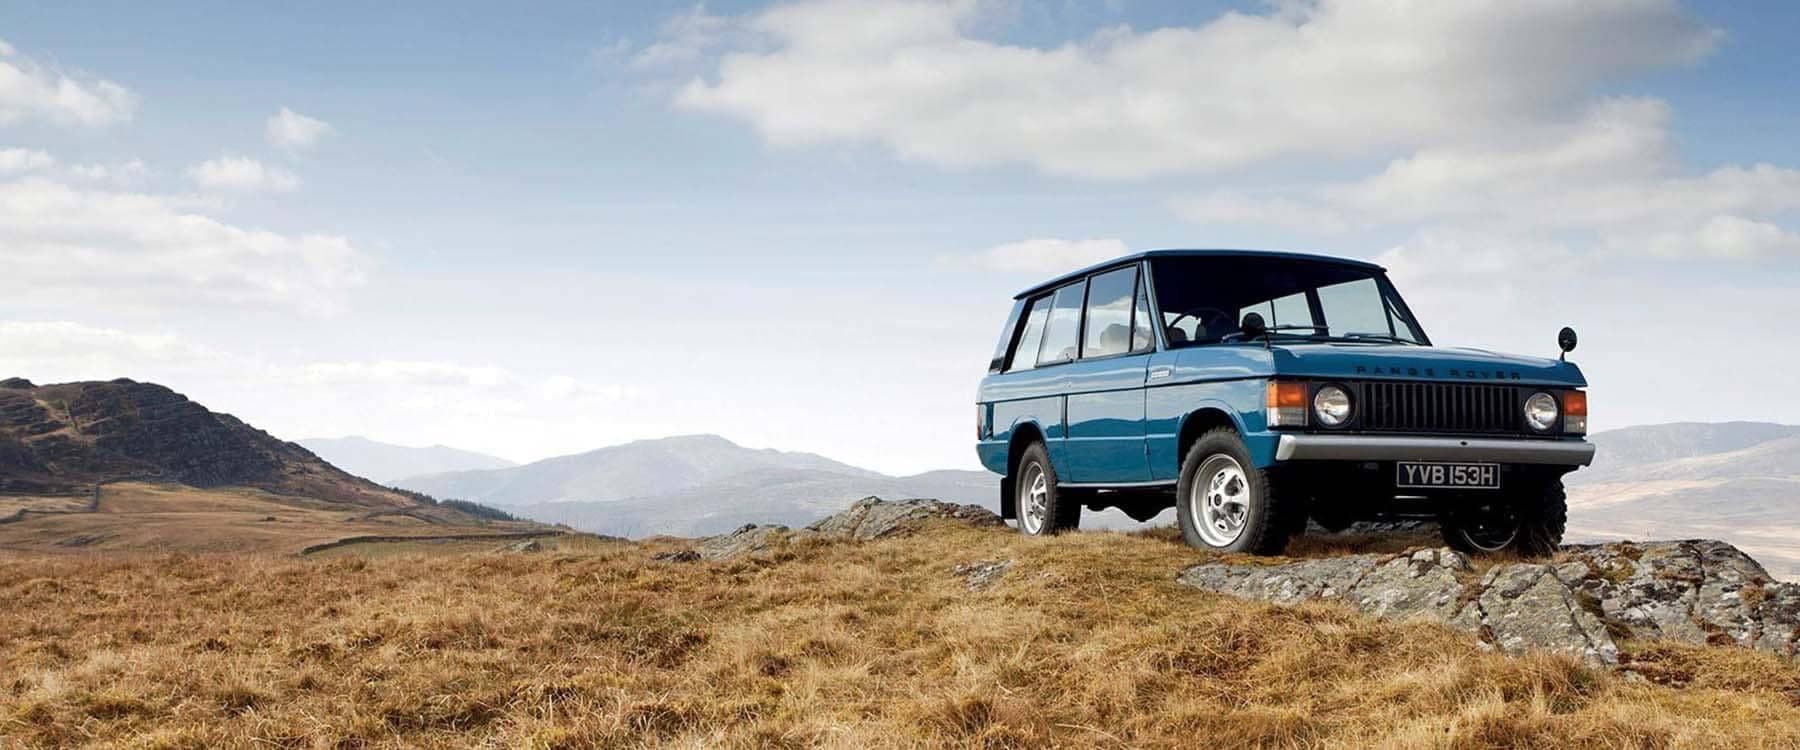 Land Rover Heritage Classic 1970 SUV